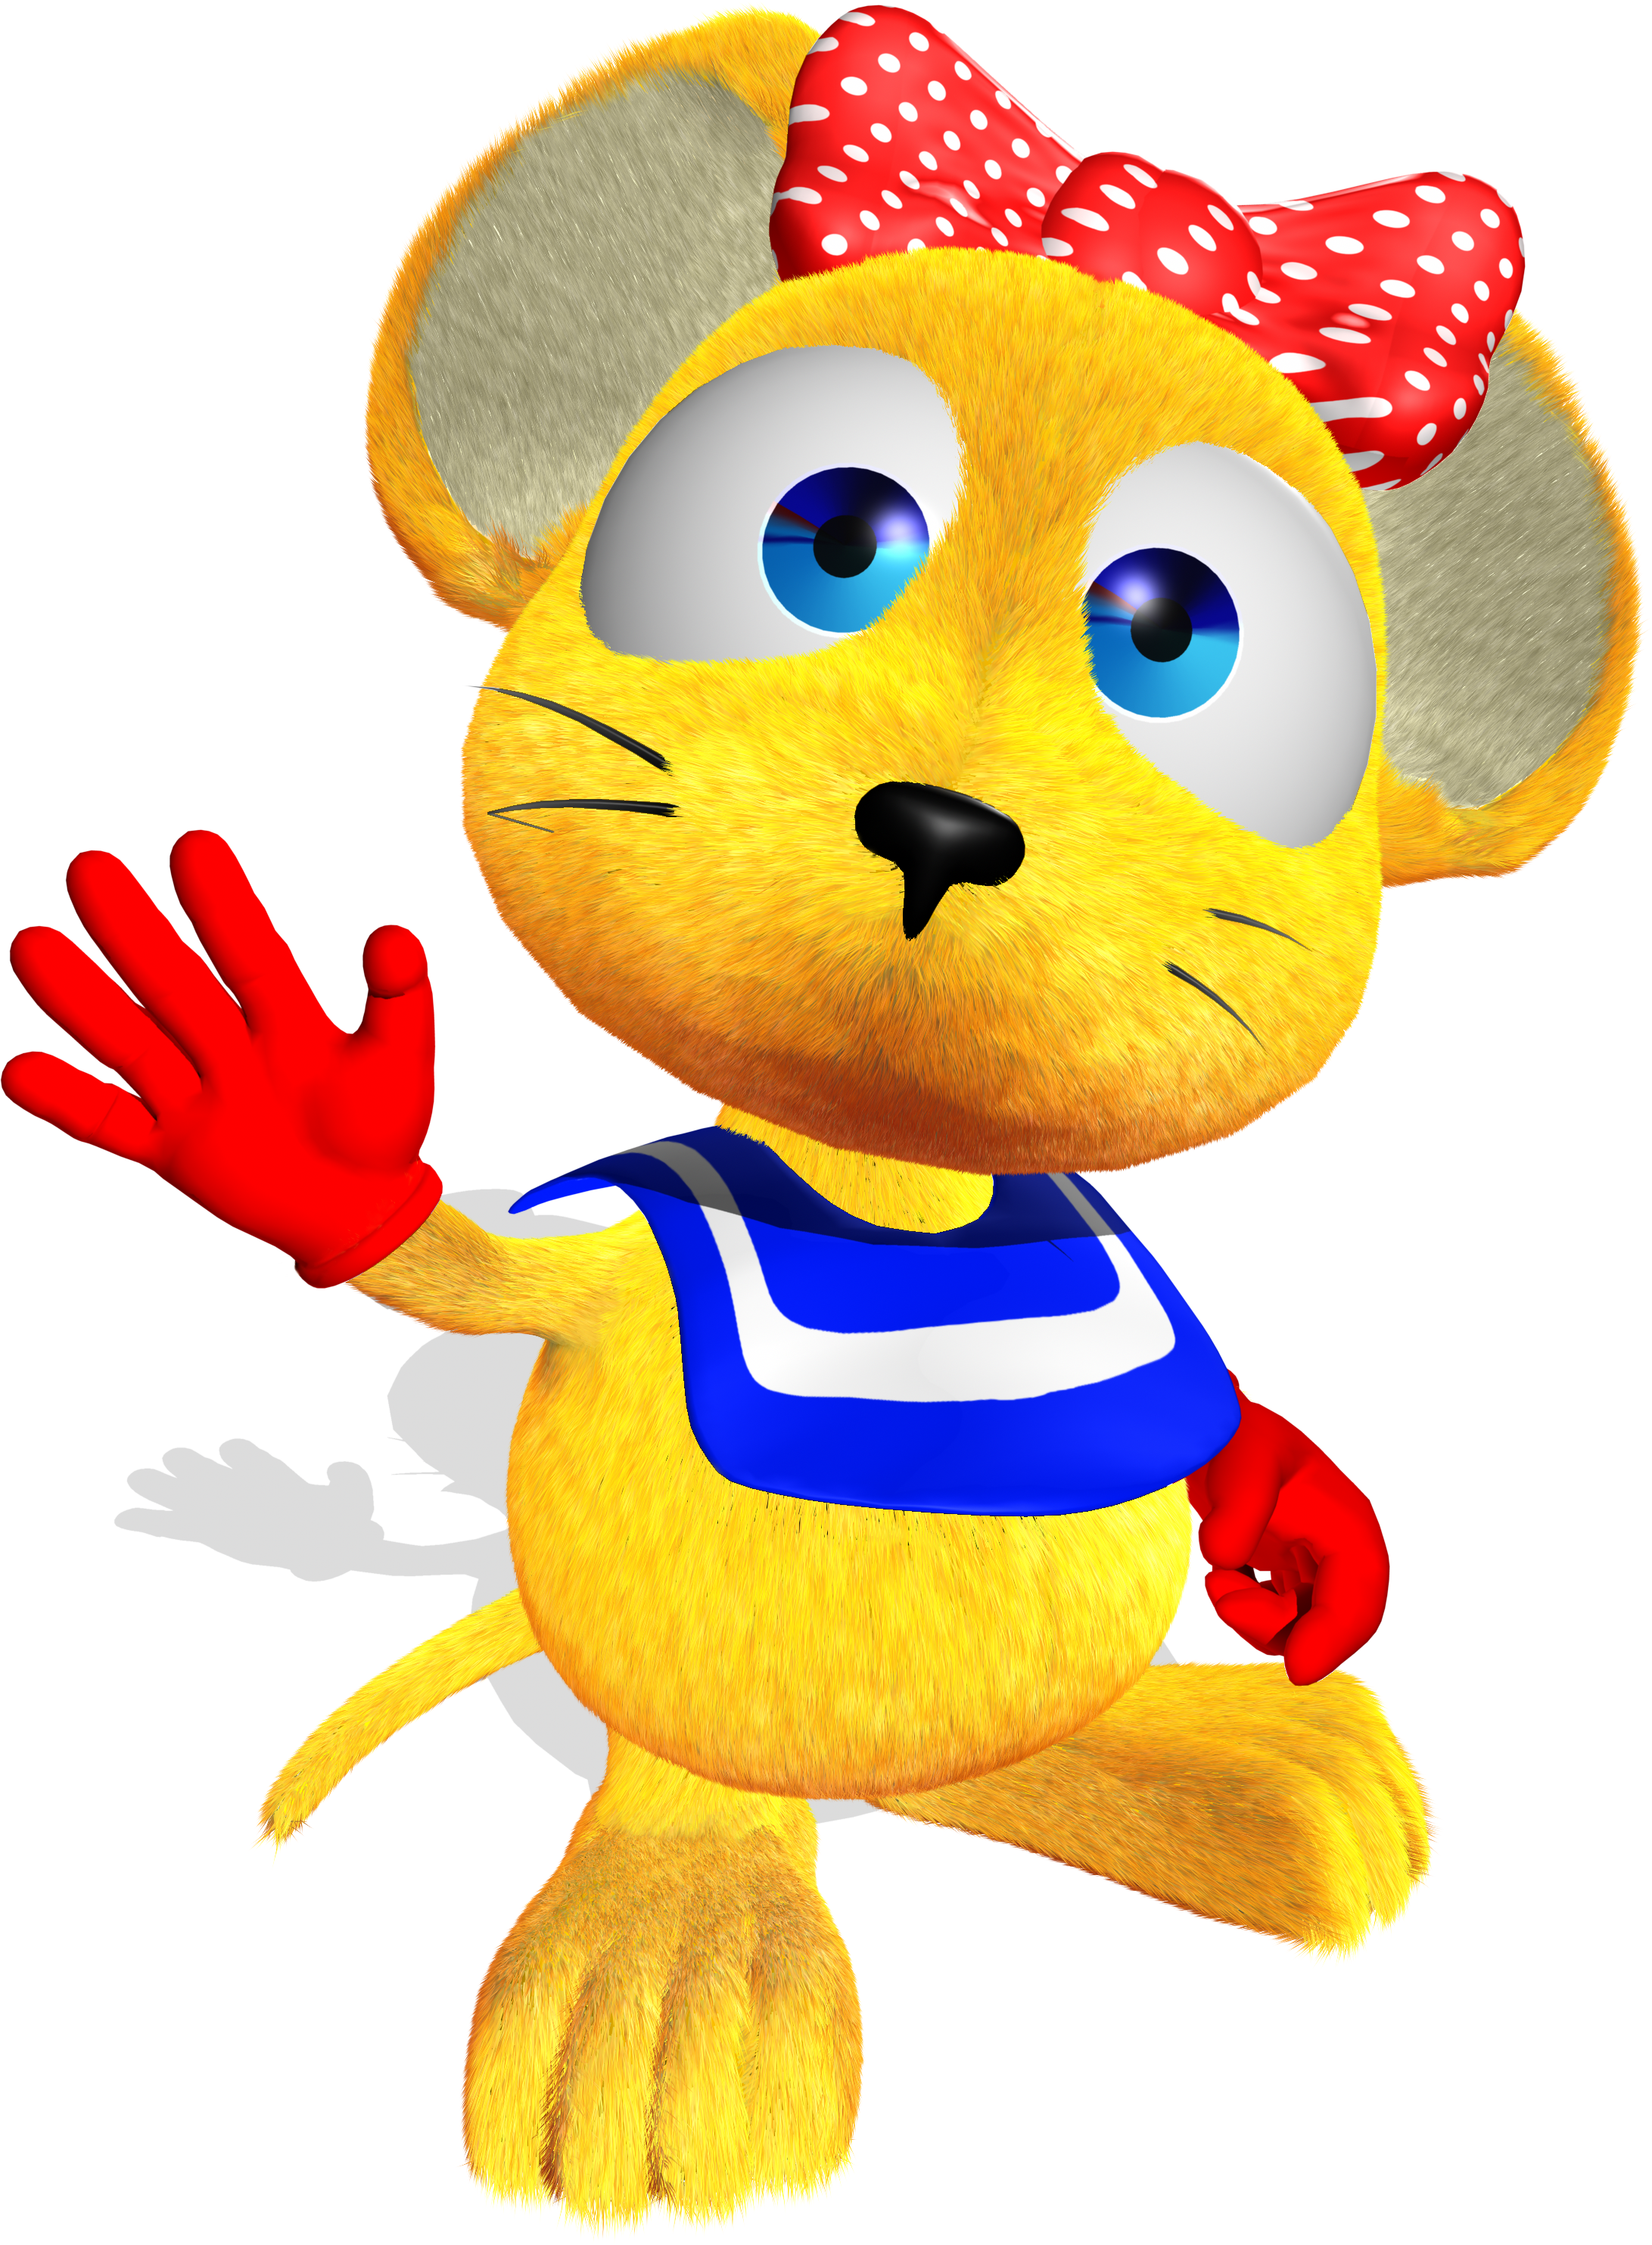 Pipsy the Mouse